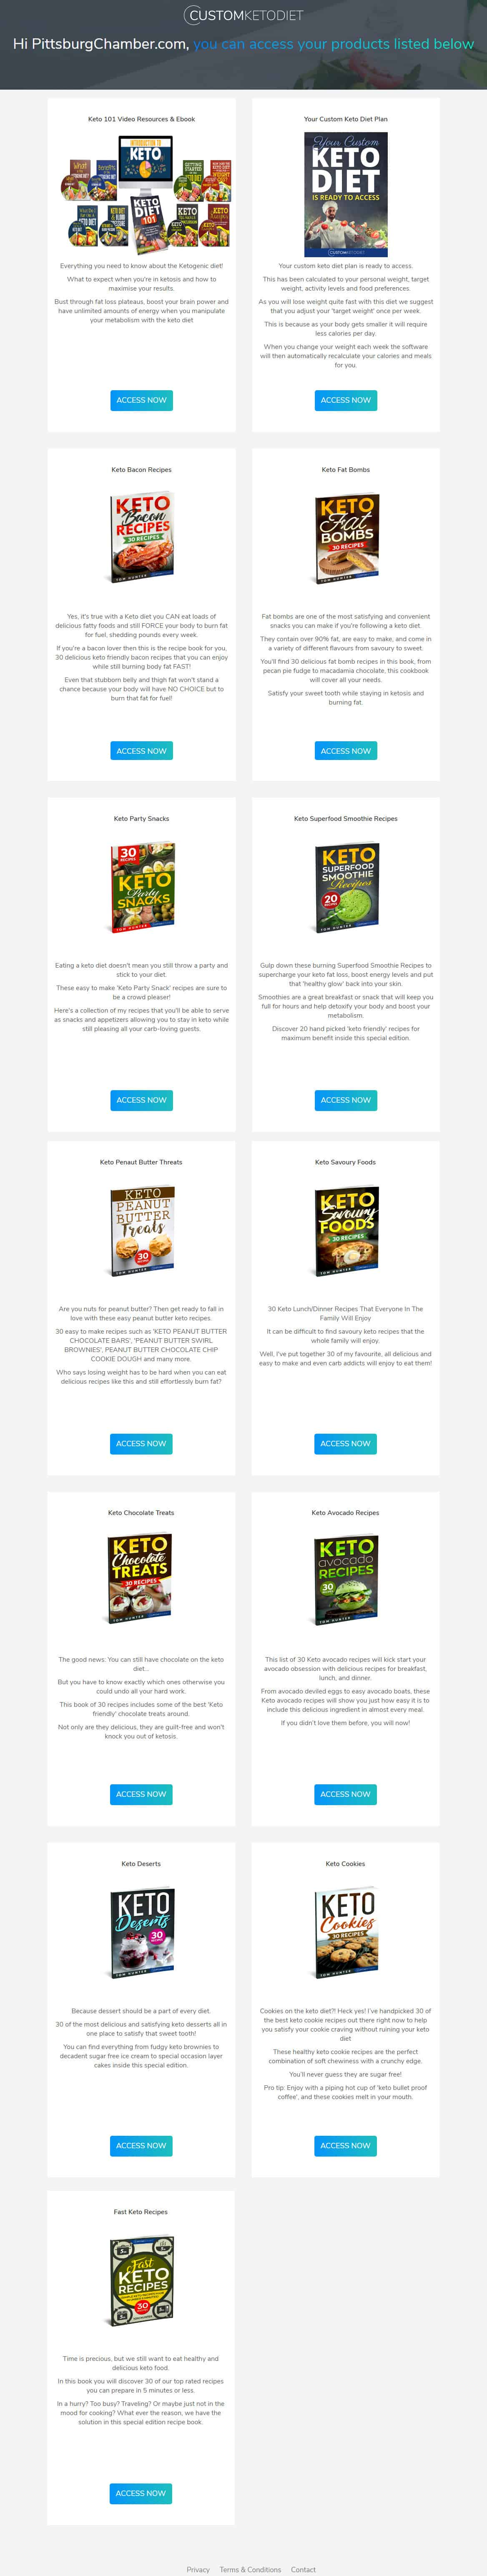 25 Percent Off Online Coupon Custom Keto Diet April